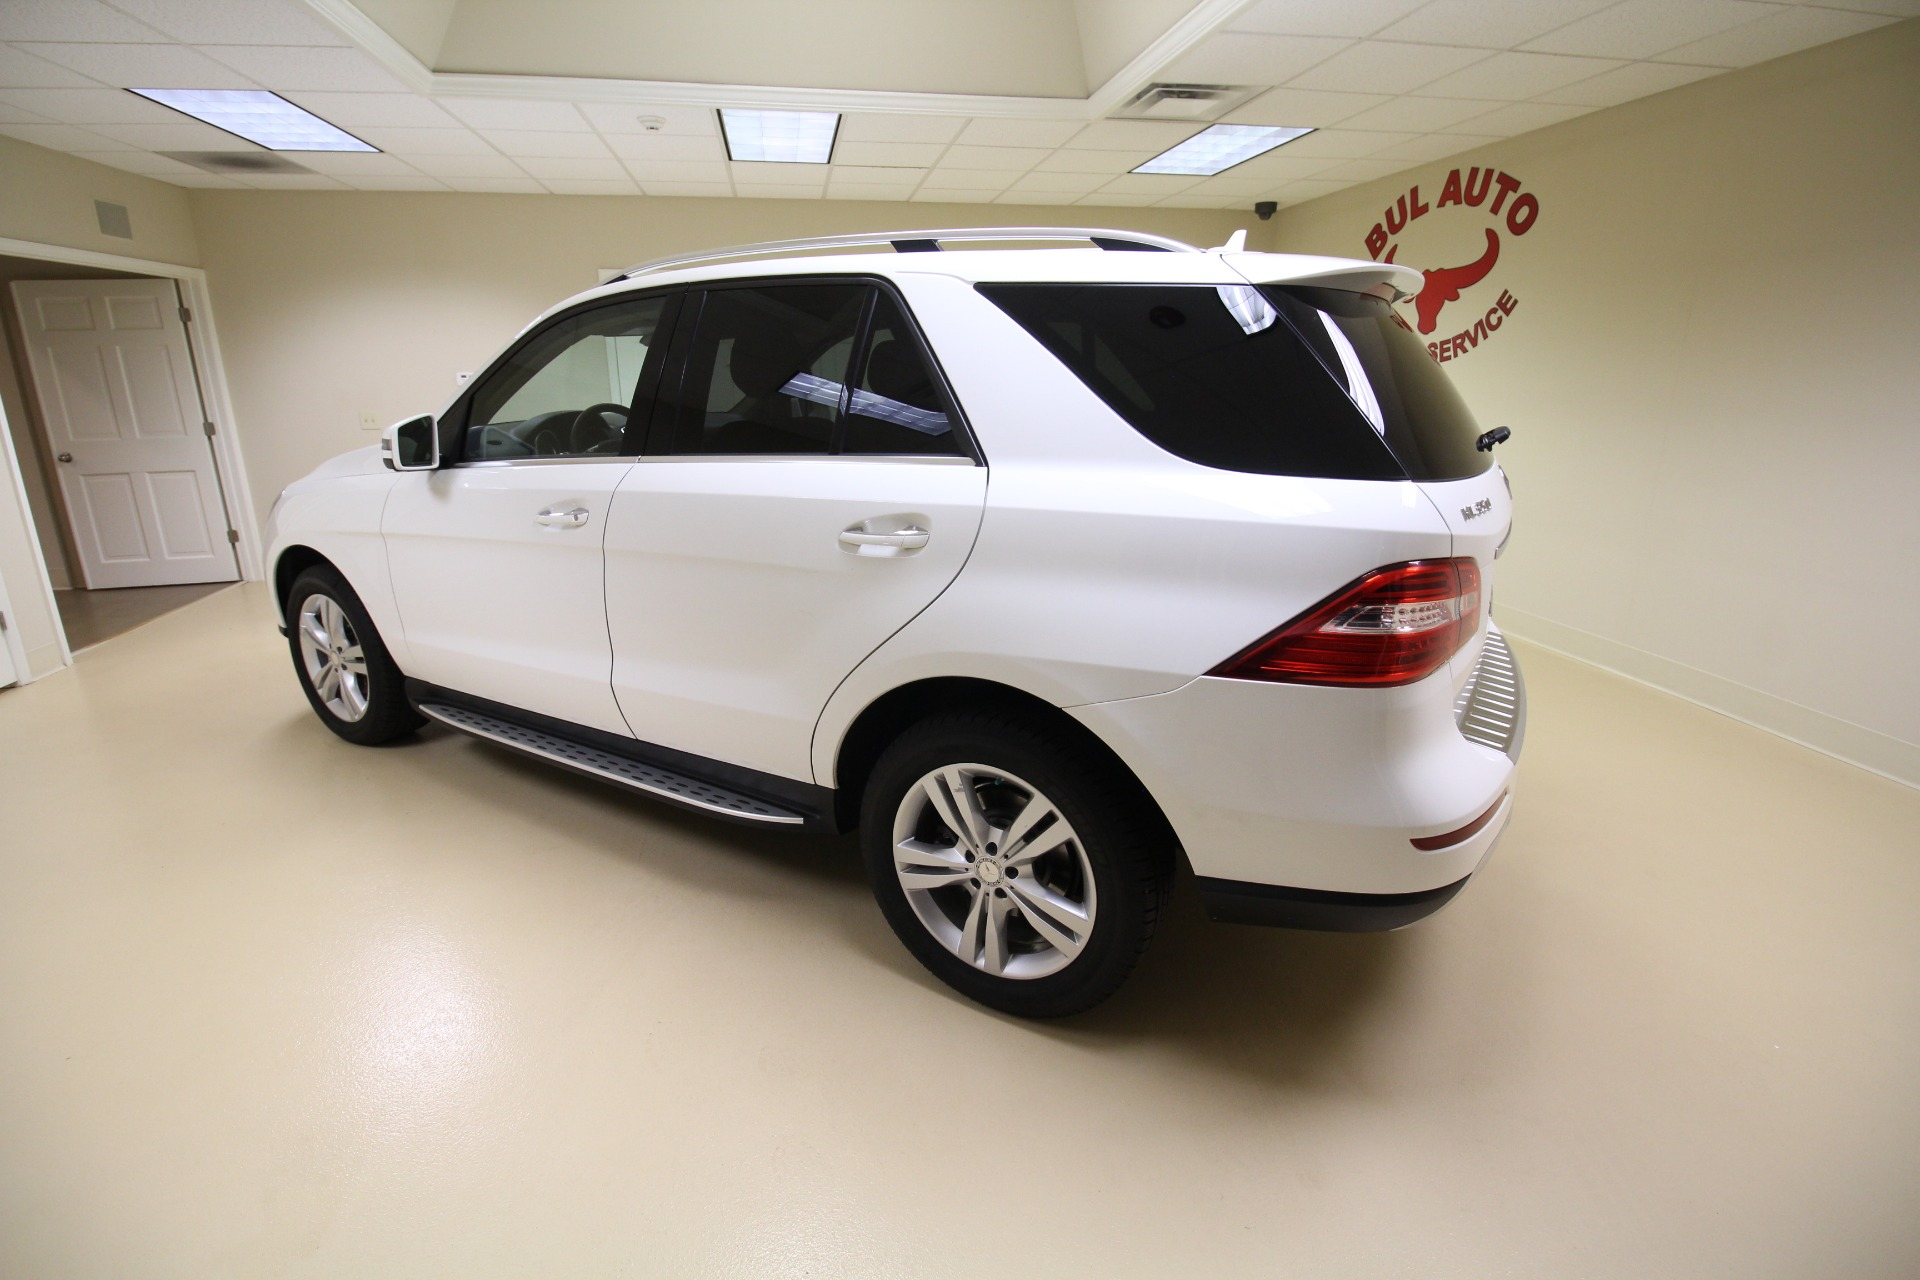 Used 2015 Mercedes-Benz M-Class ML350 4MATIC SUPERB CONDITION LOW MILES GREAT COLORS | Albany, NY